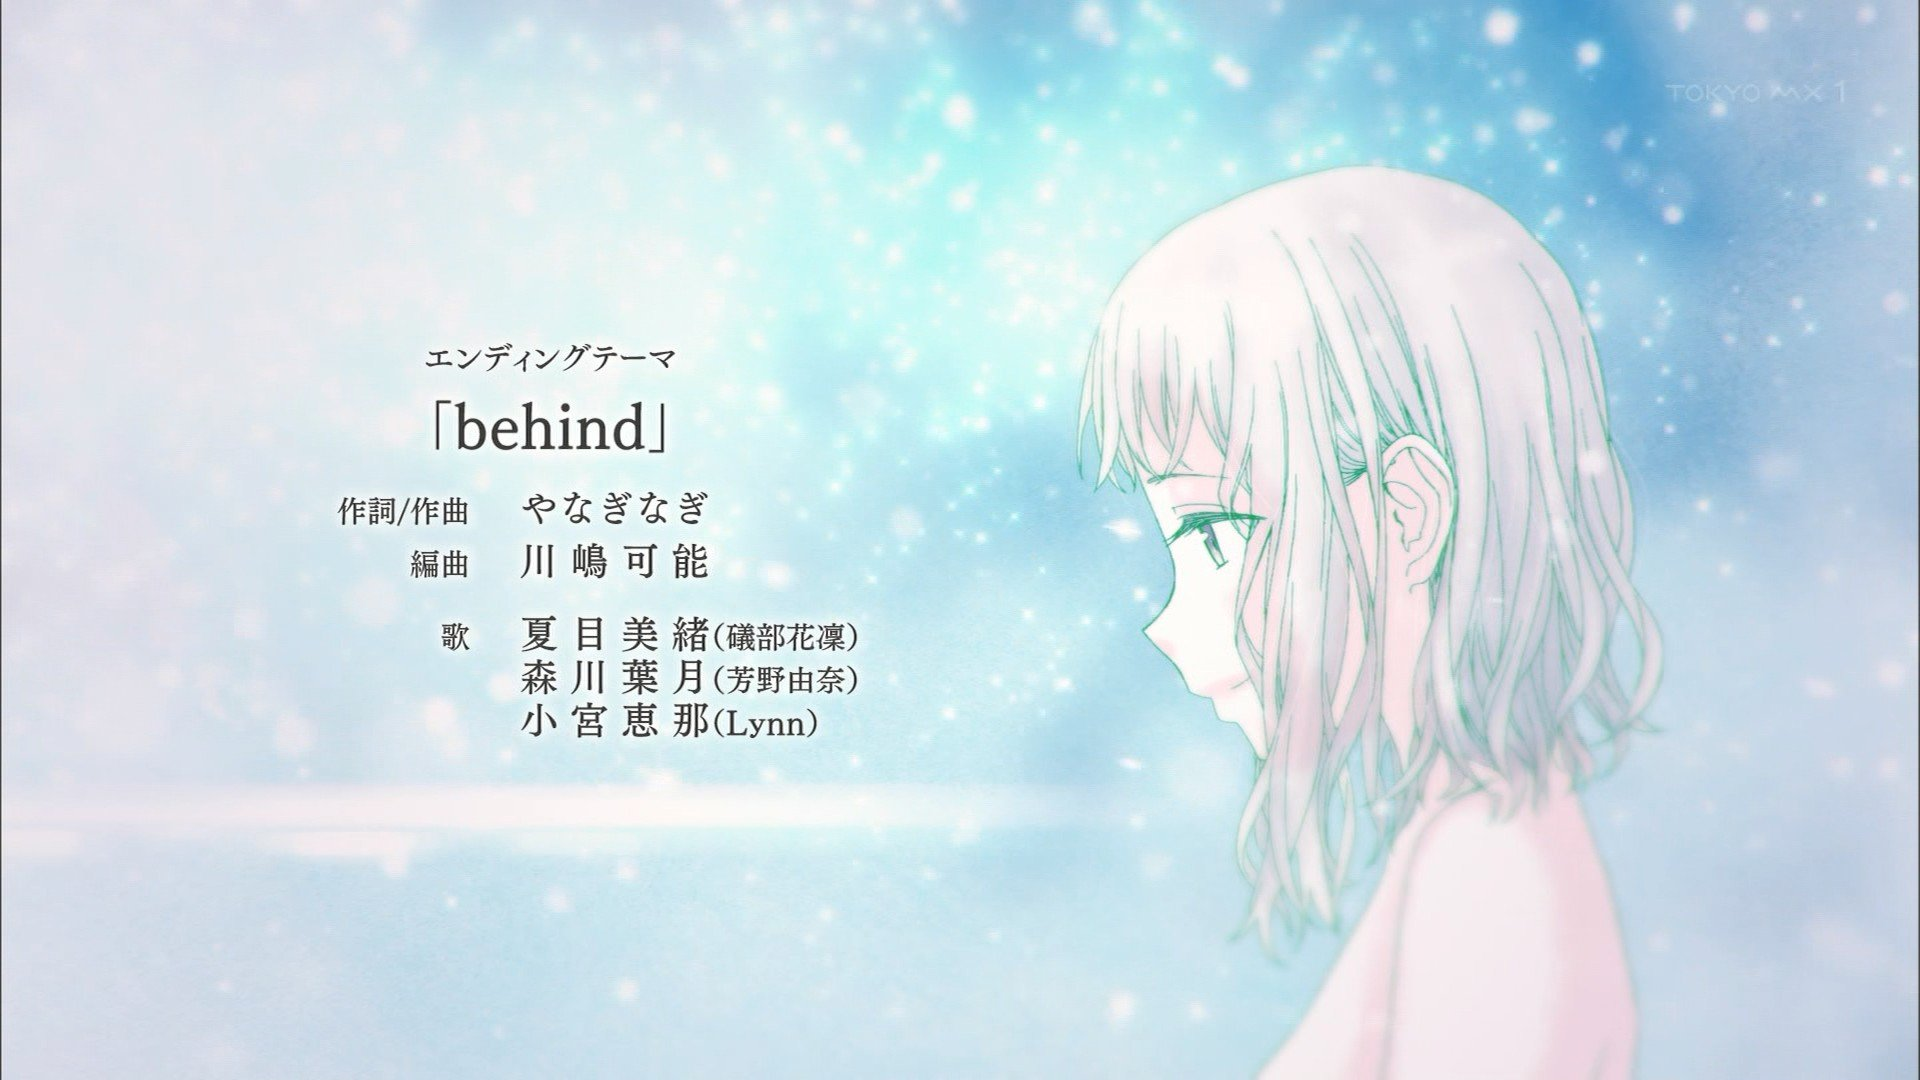 behind #JB_anime #tokyomx https://t.co/xJnUP7Ehy2